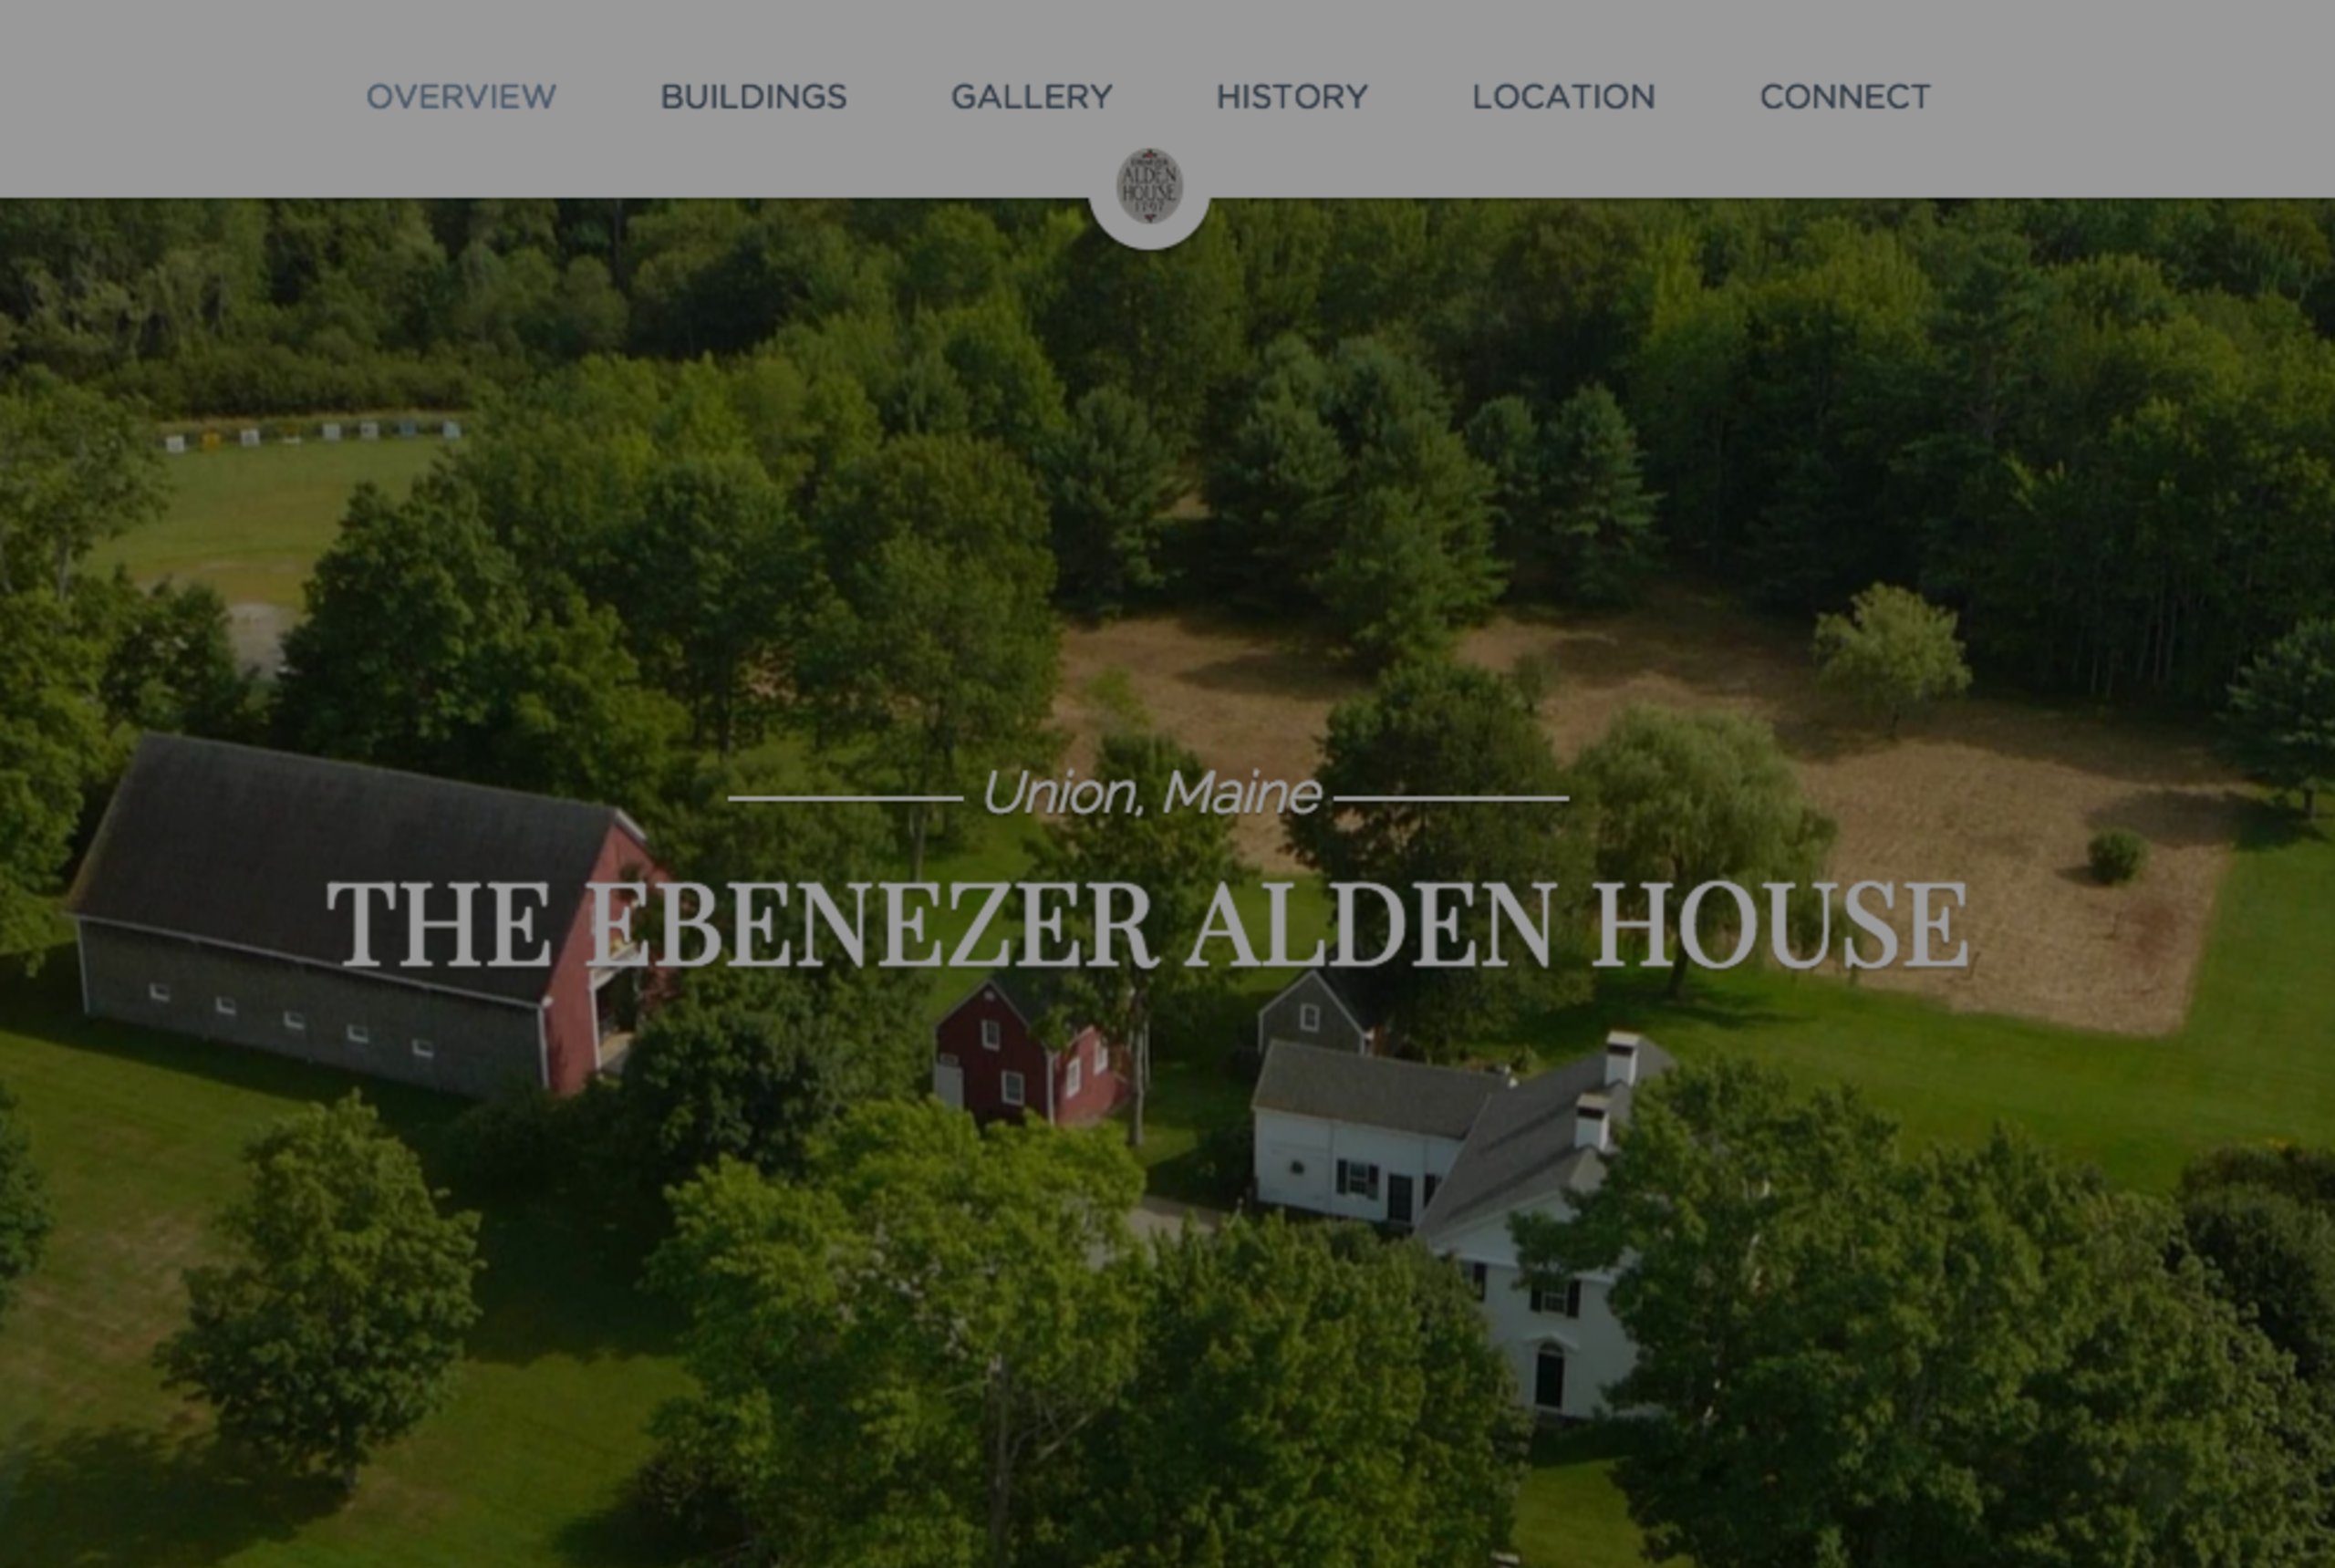 New Property Website Released: EbenezerAldenHouse.com